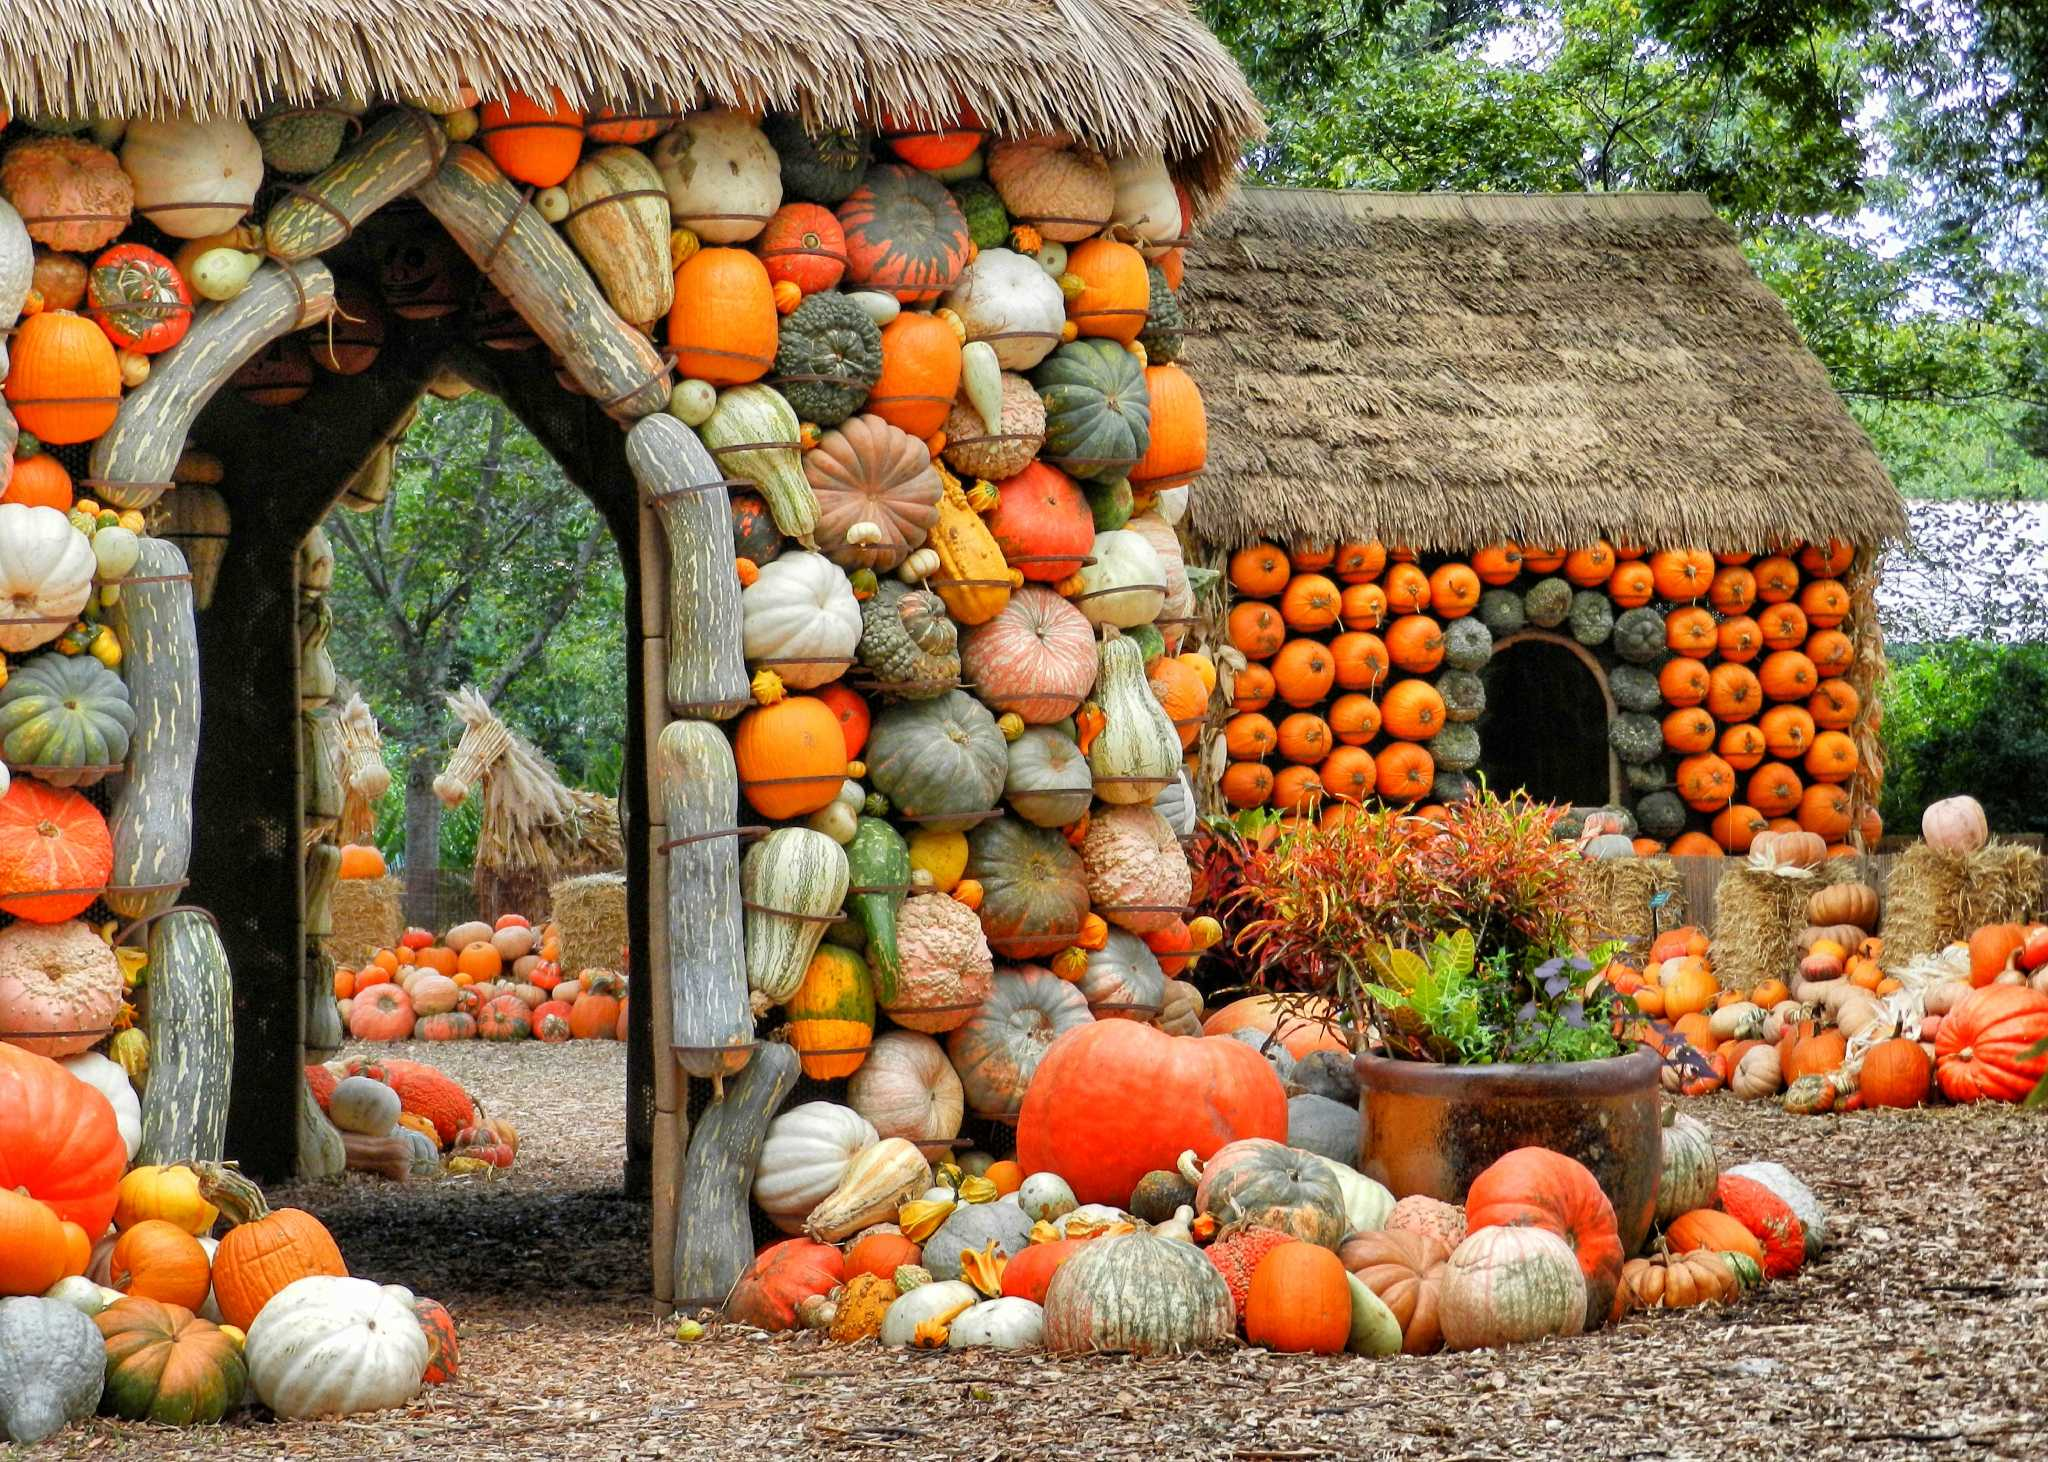 Dallas Arboretum puts on a show of fall colors - Houston Chronicle